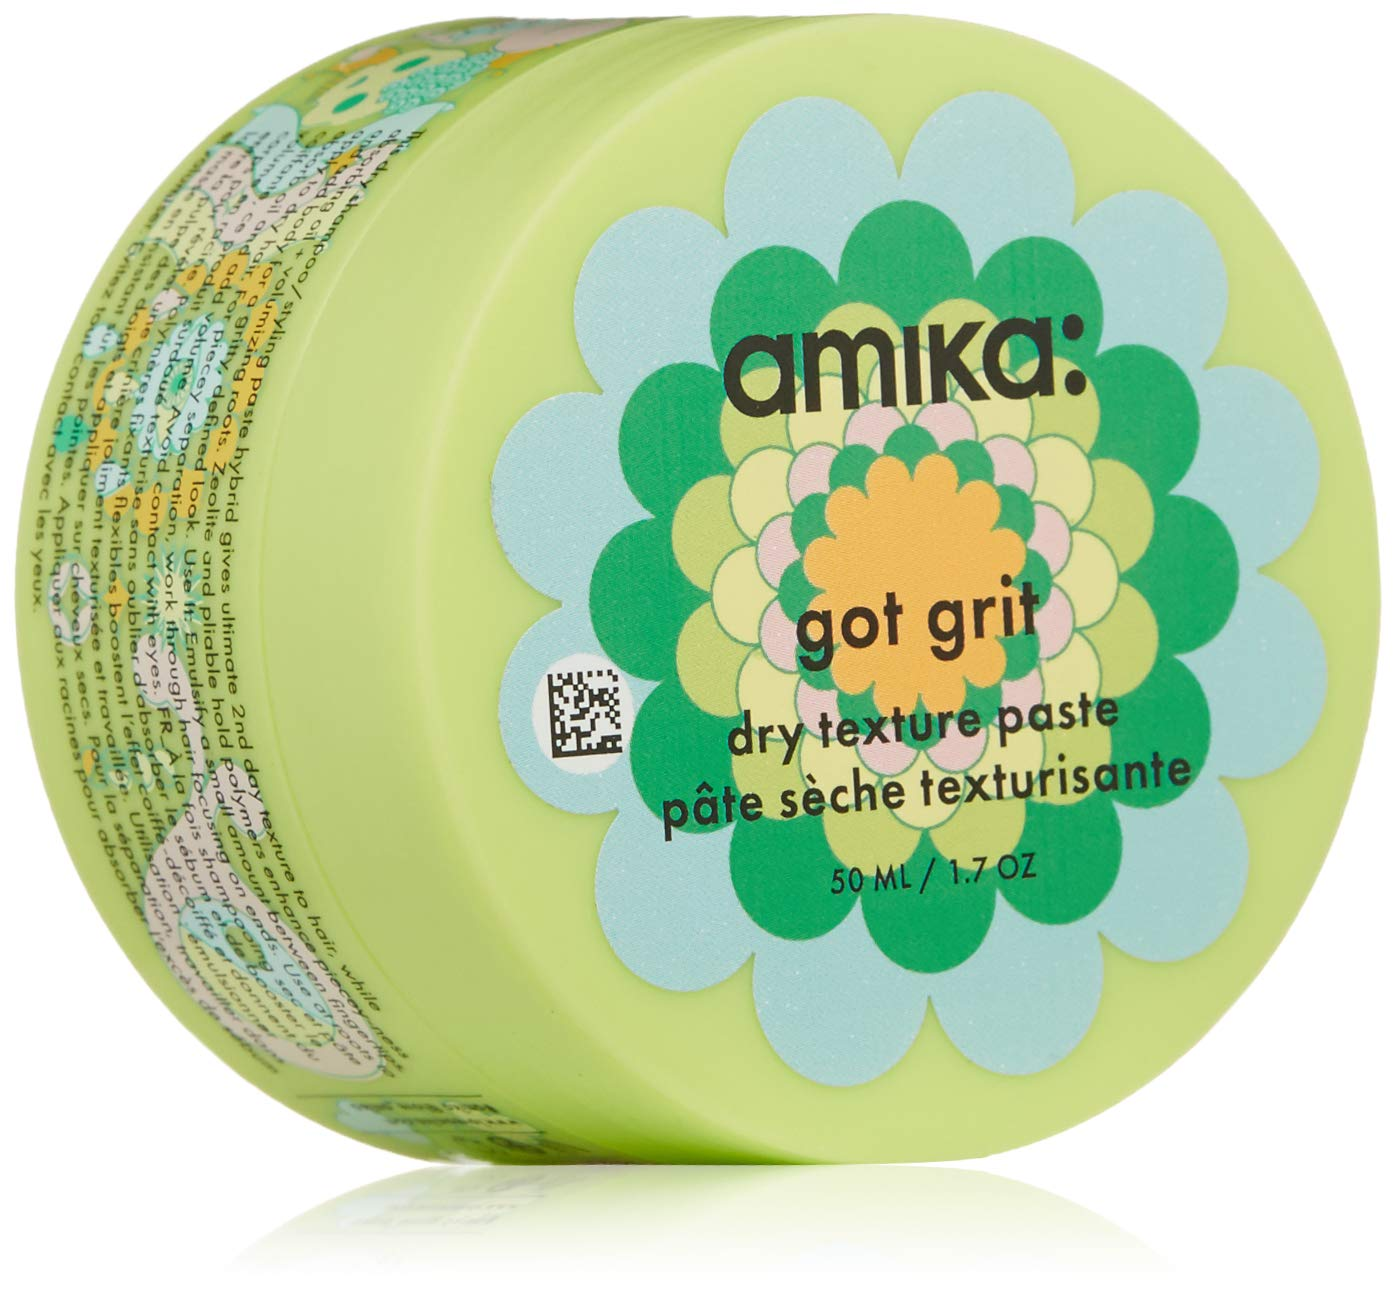 amika Got Grit Dry Texture Paste, 1.7 Fl. Oz. by amika